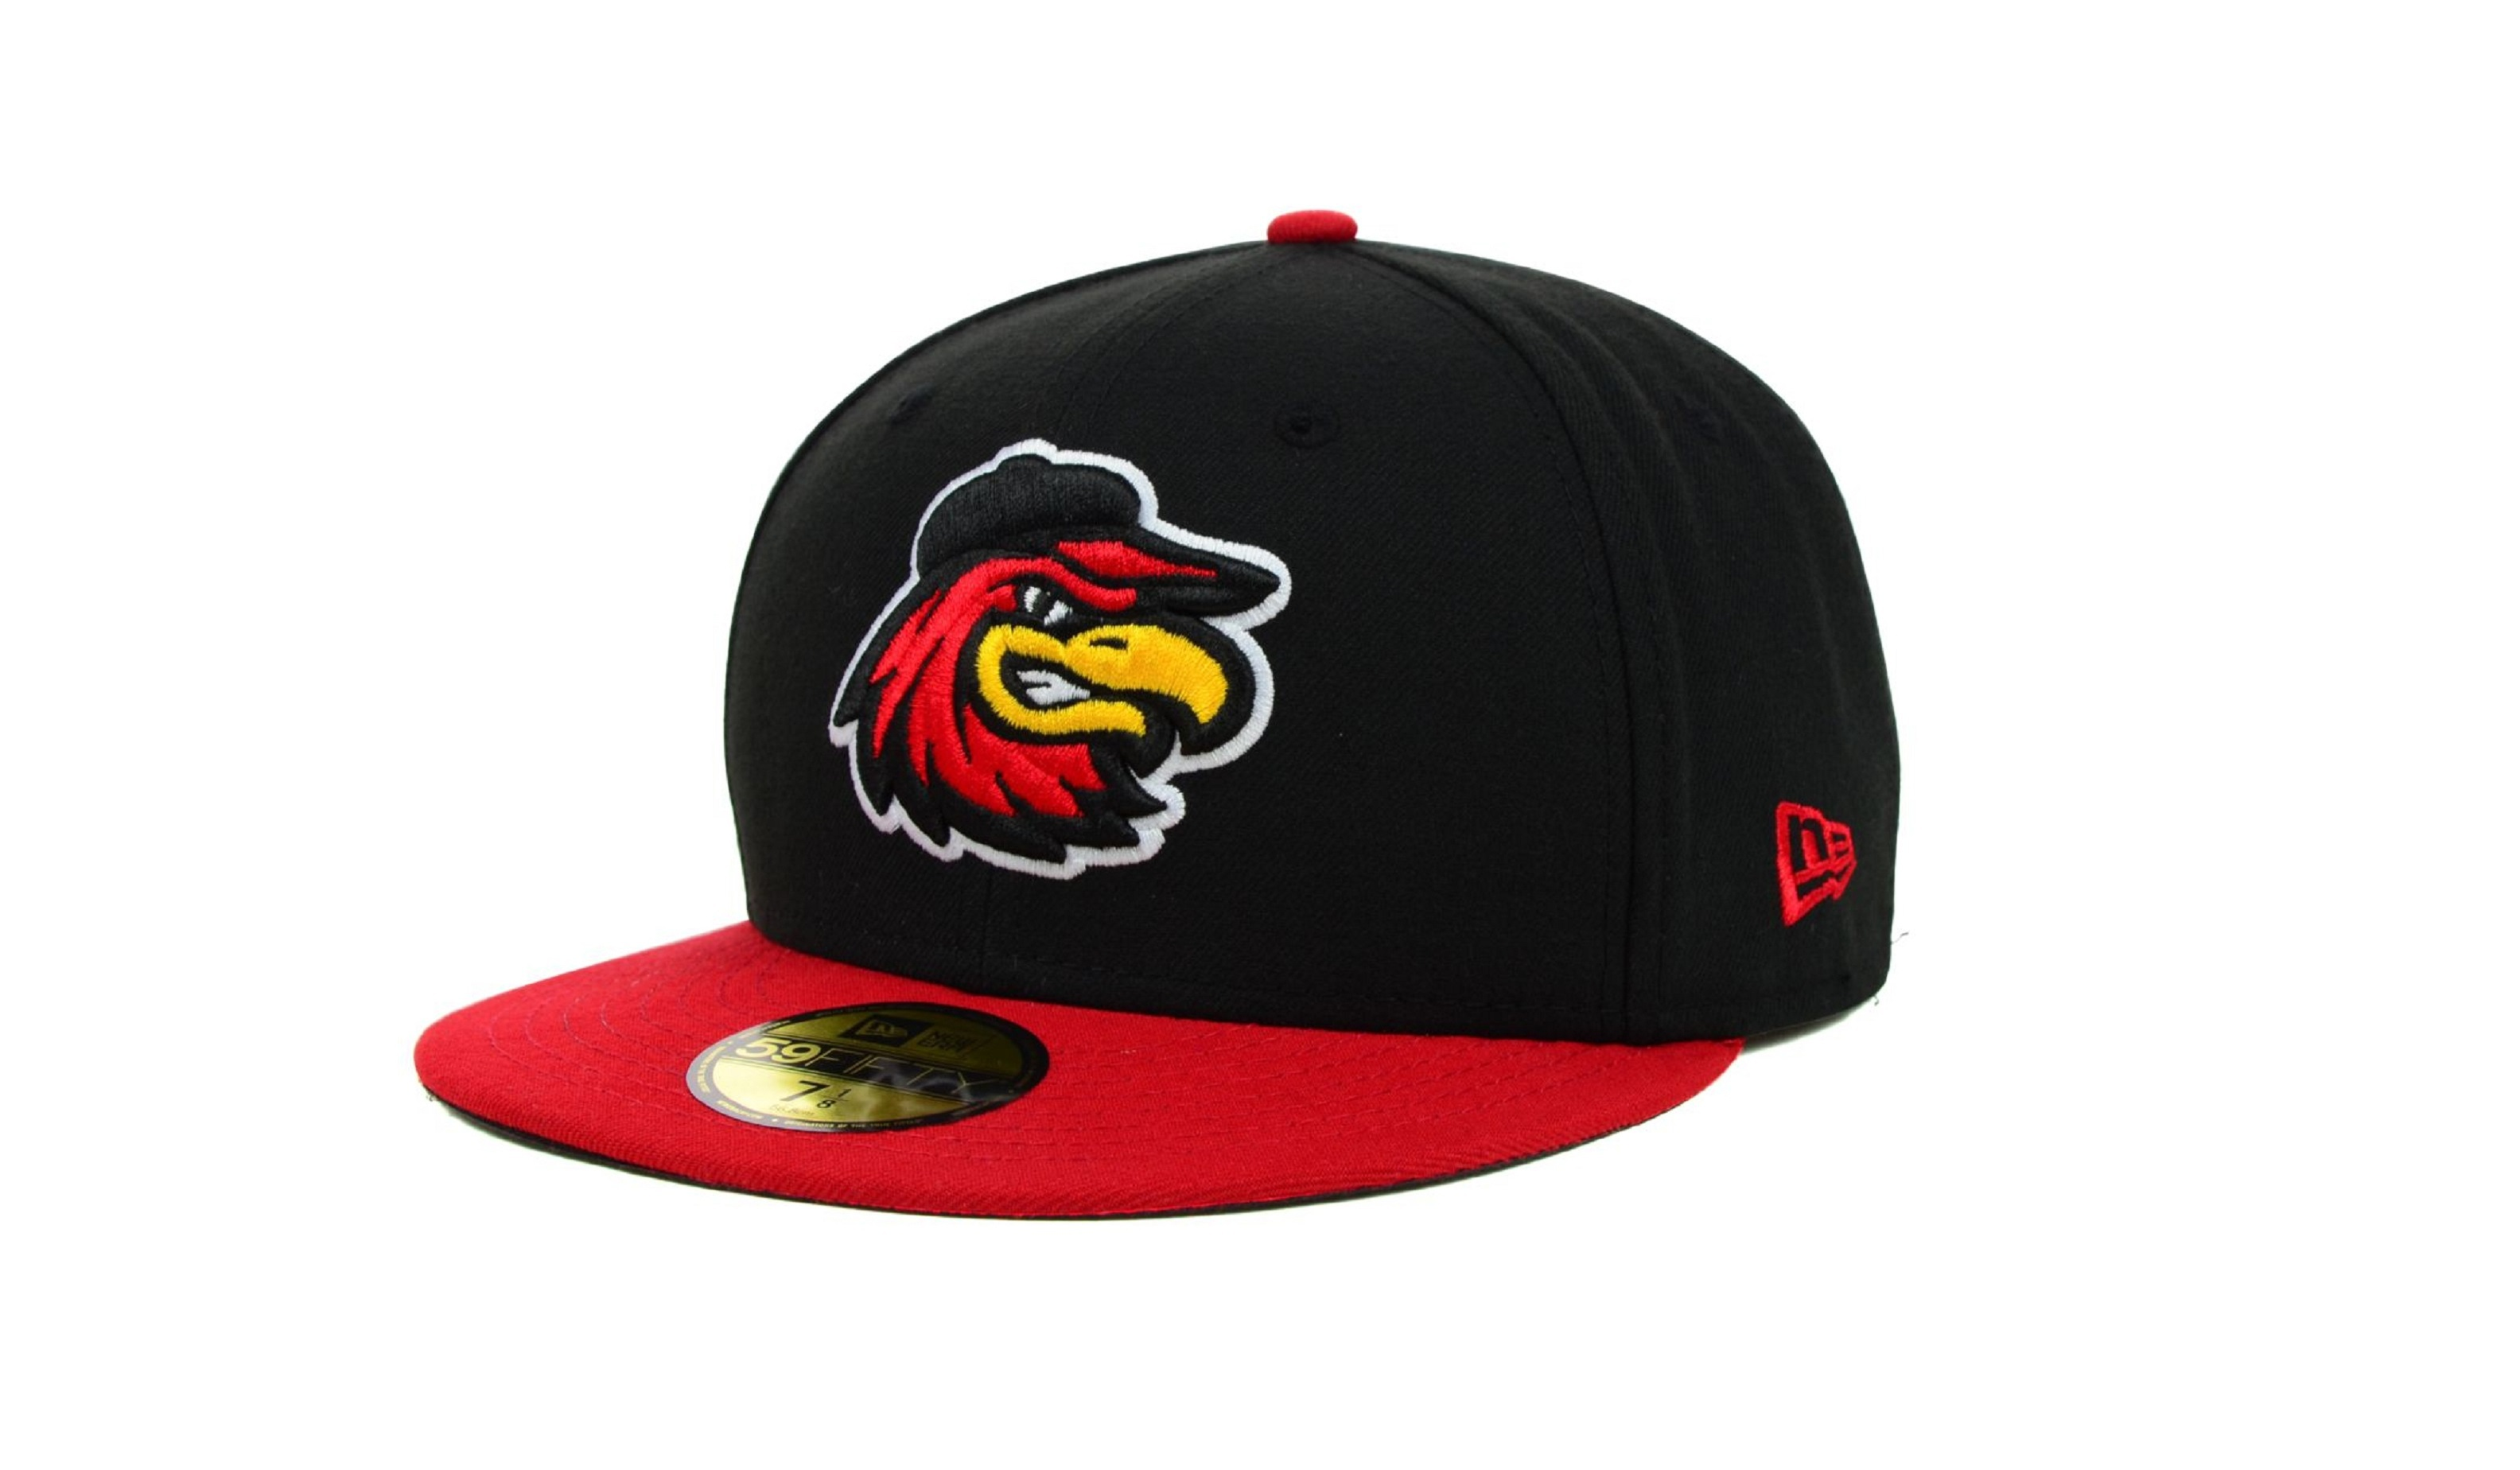 Rochester Red Wings High Definition Wallpapers